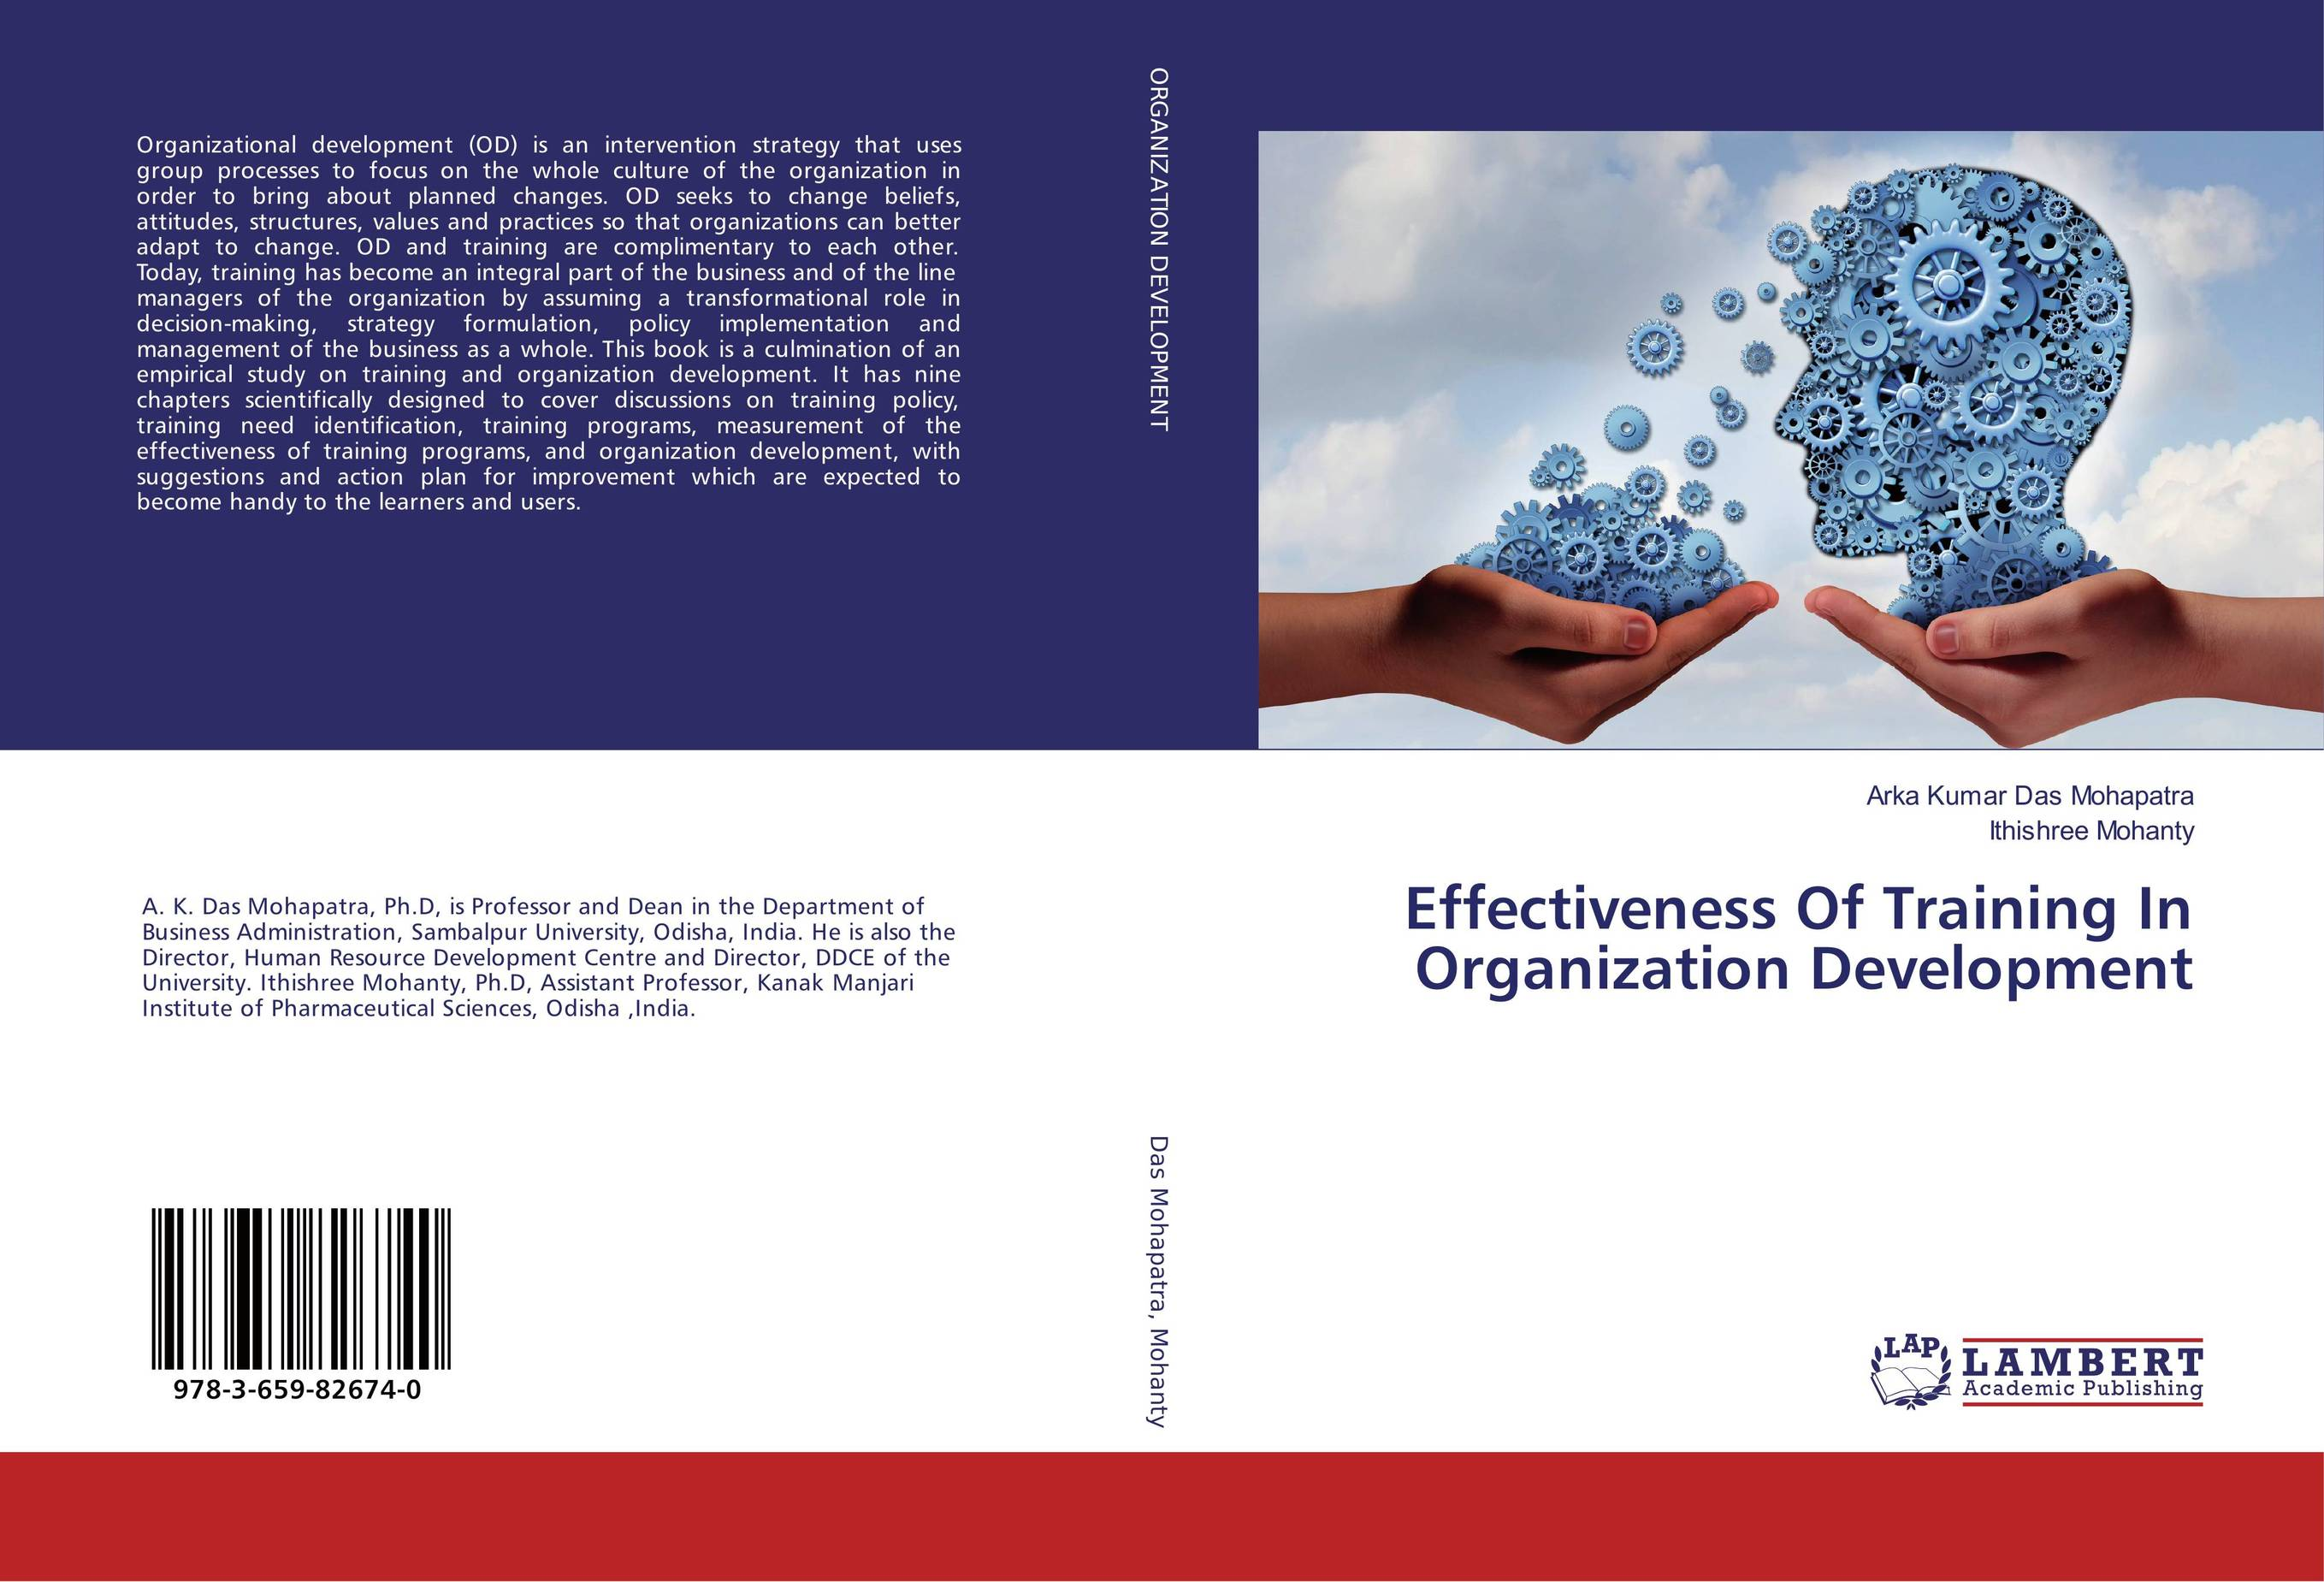 Effectiveness Of Training In Organization Development elaine biech training and development for dummies